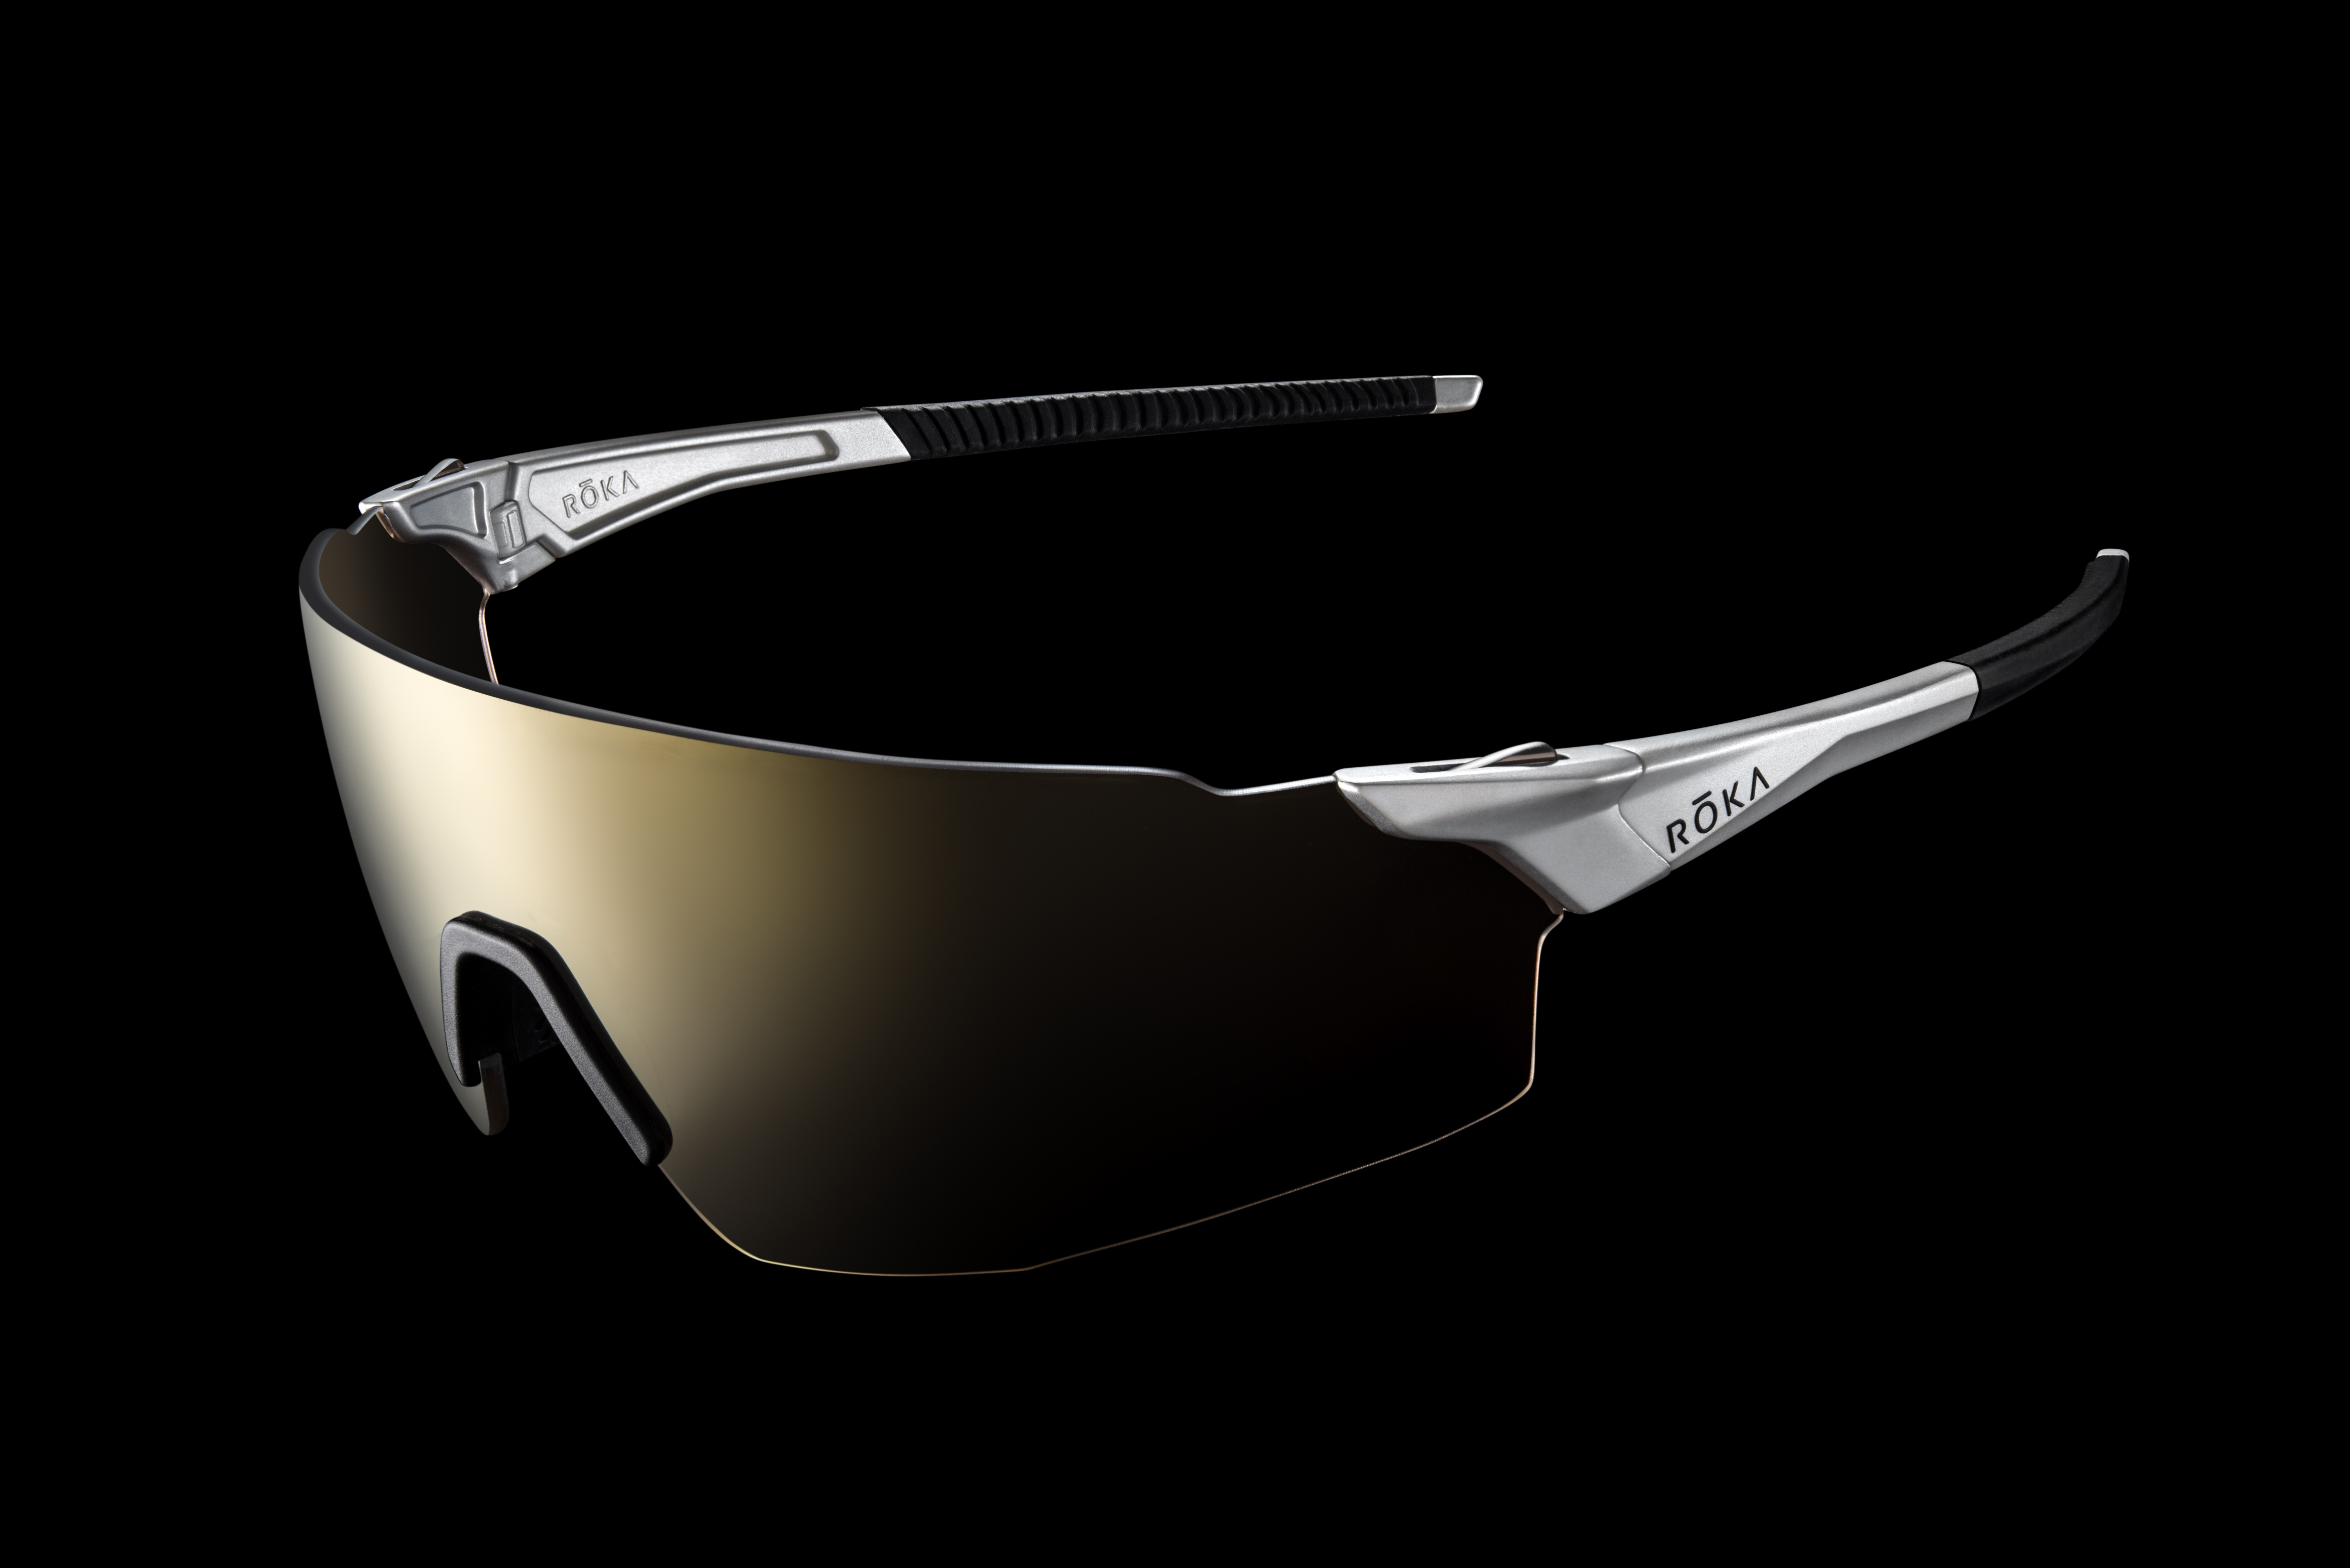 7d0003cbc7f ROKA Launches Ultralight Advanced Performance Eyewear with World-Class  Roster of Athletes